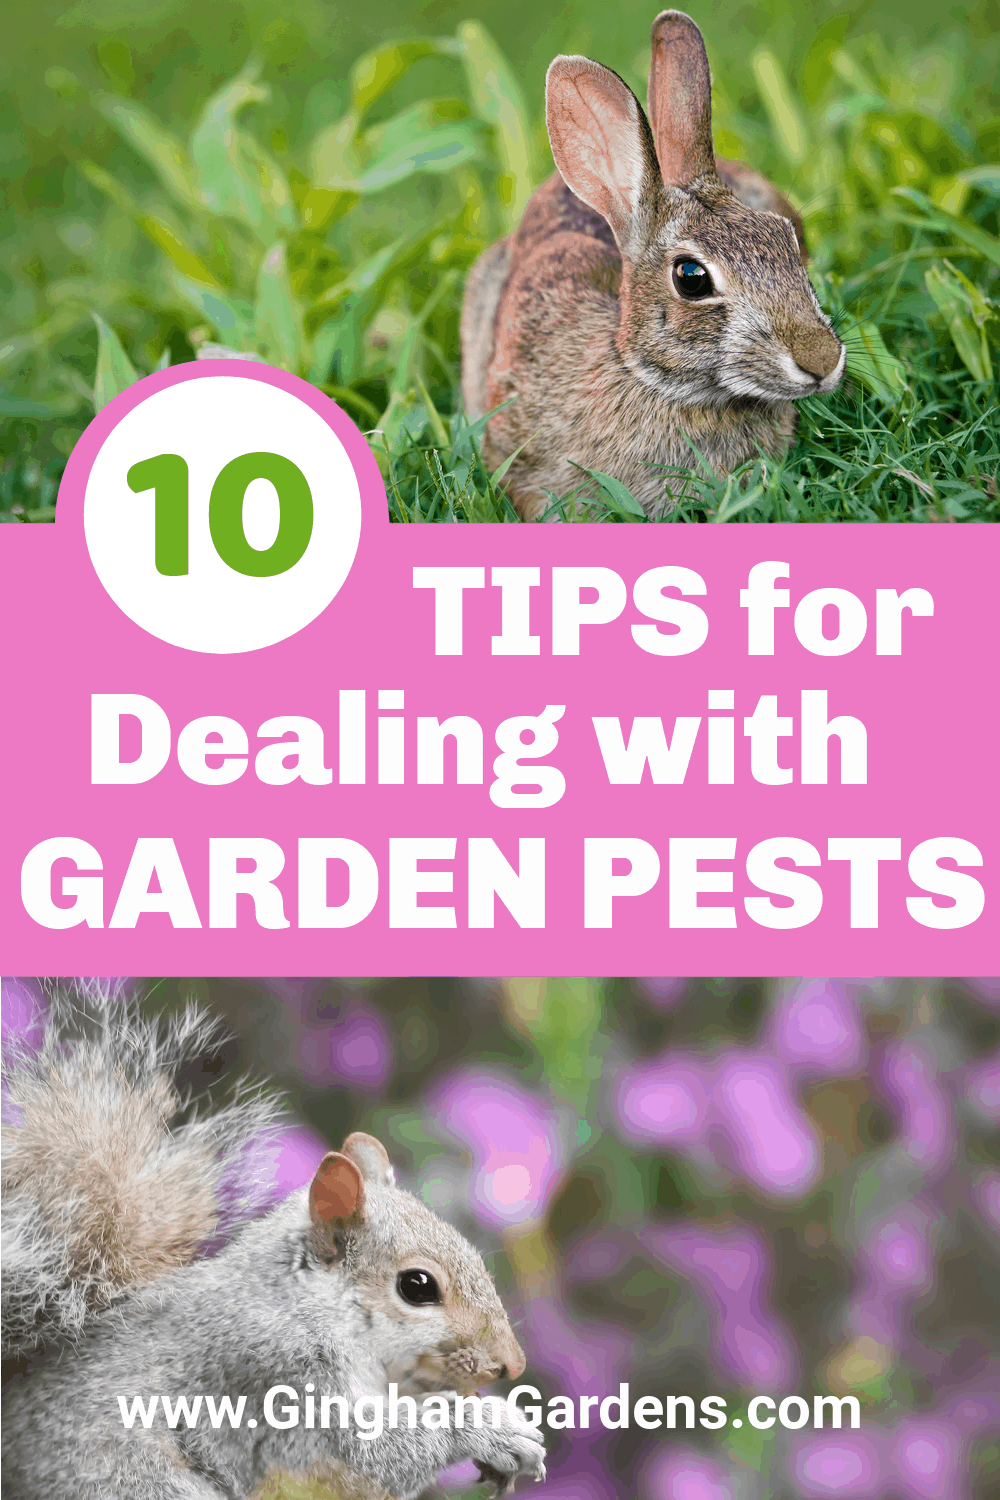 Images of squirrel and rabbit in gardens with text overlay - 10 Tips for Dealing with Garden Pests